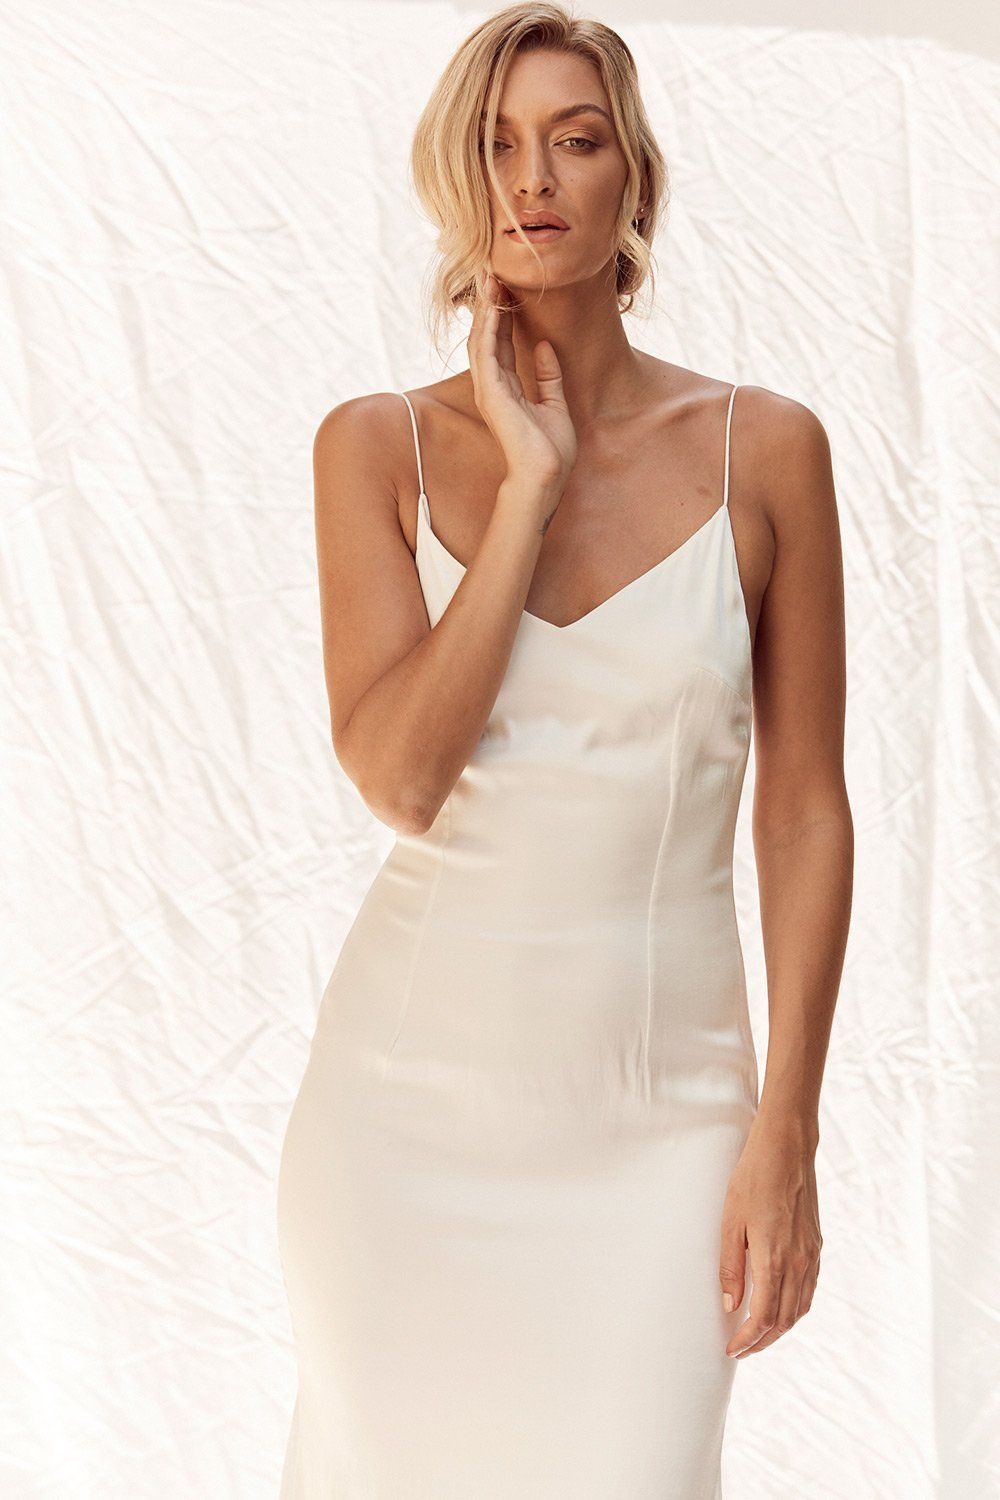 ccaf39e2396670 Apollo Gown without Train in Ivory by MLM LABEL BRIDAL